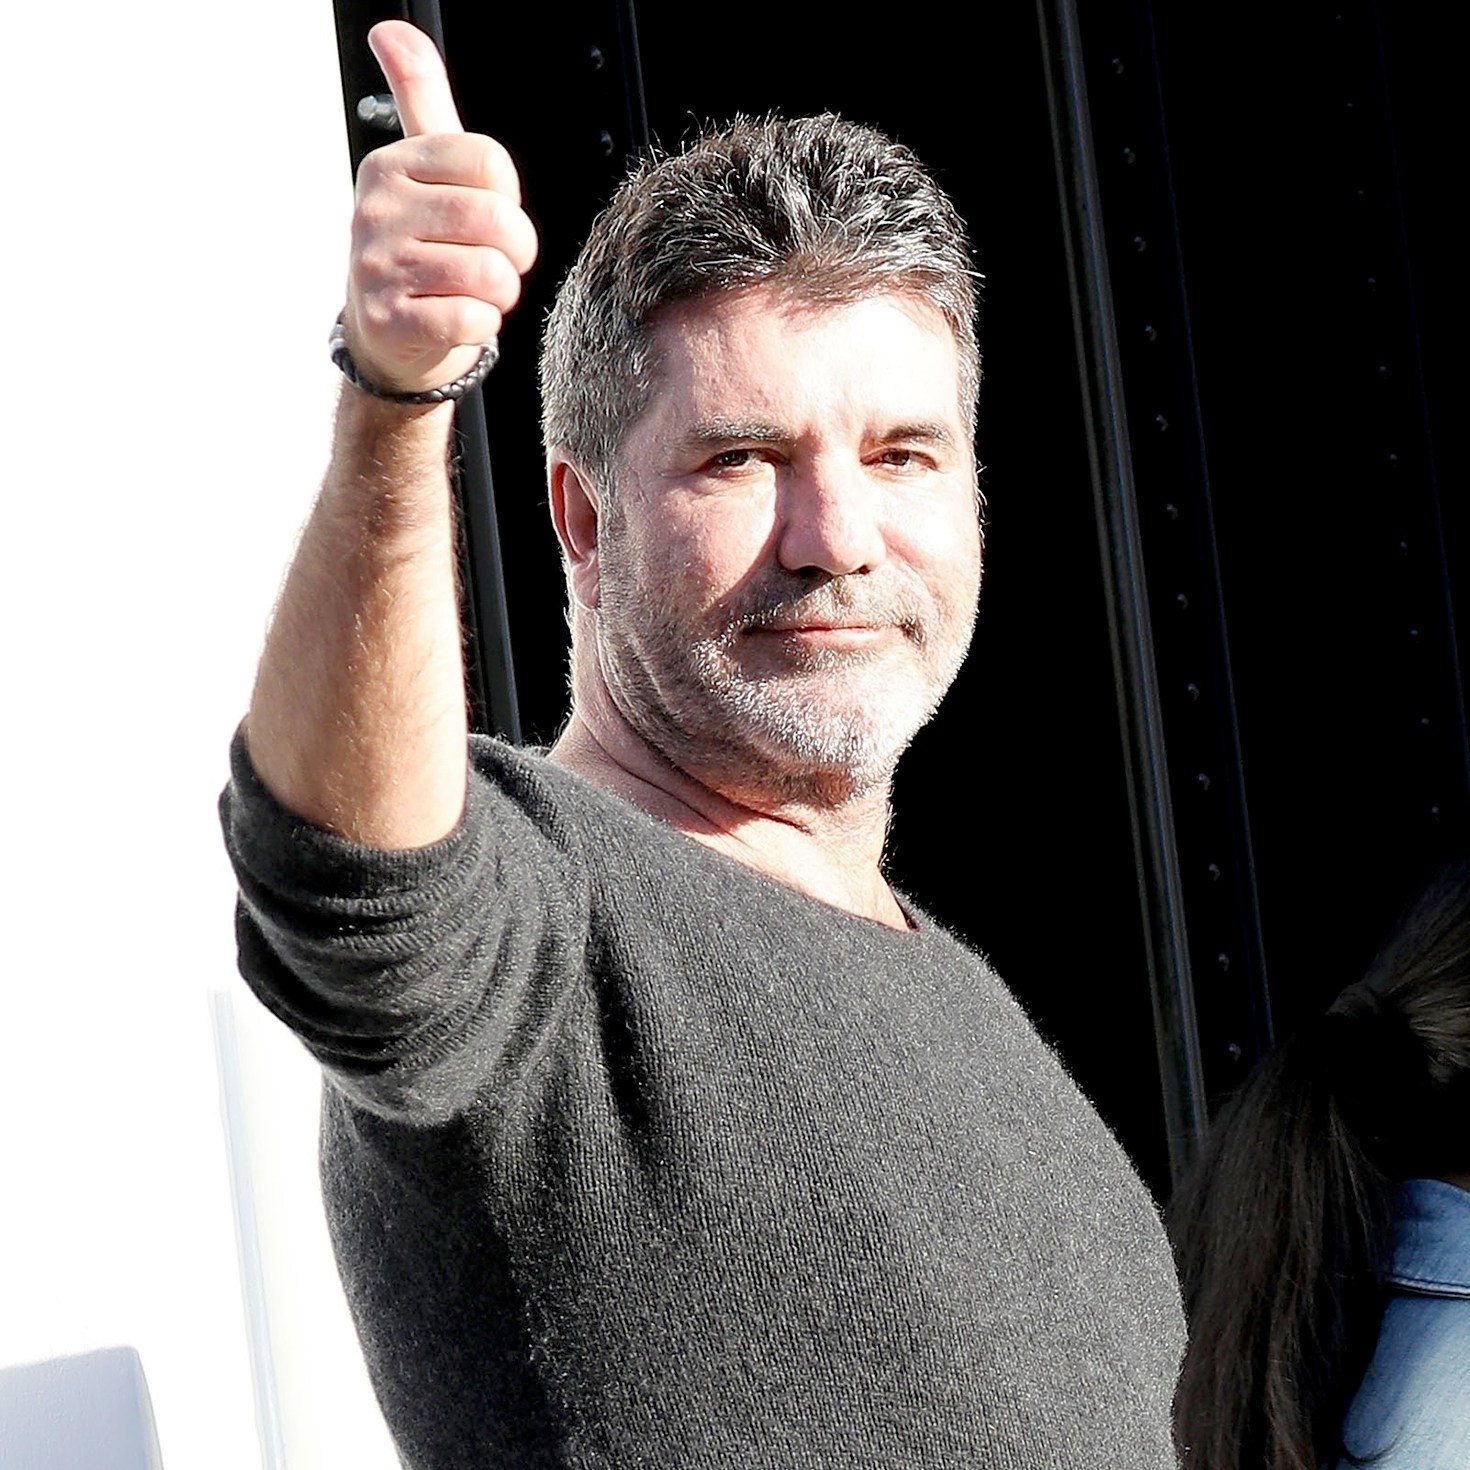 simon-cowell-home-after-fall